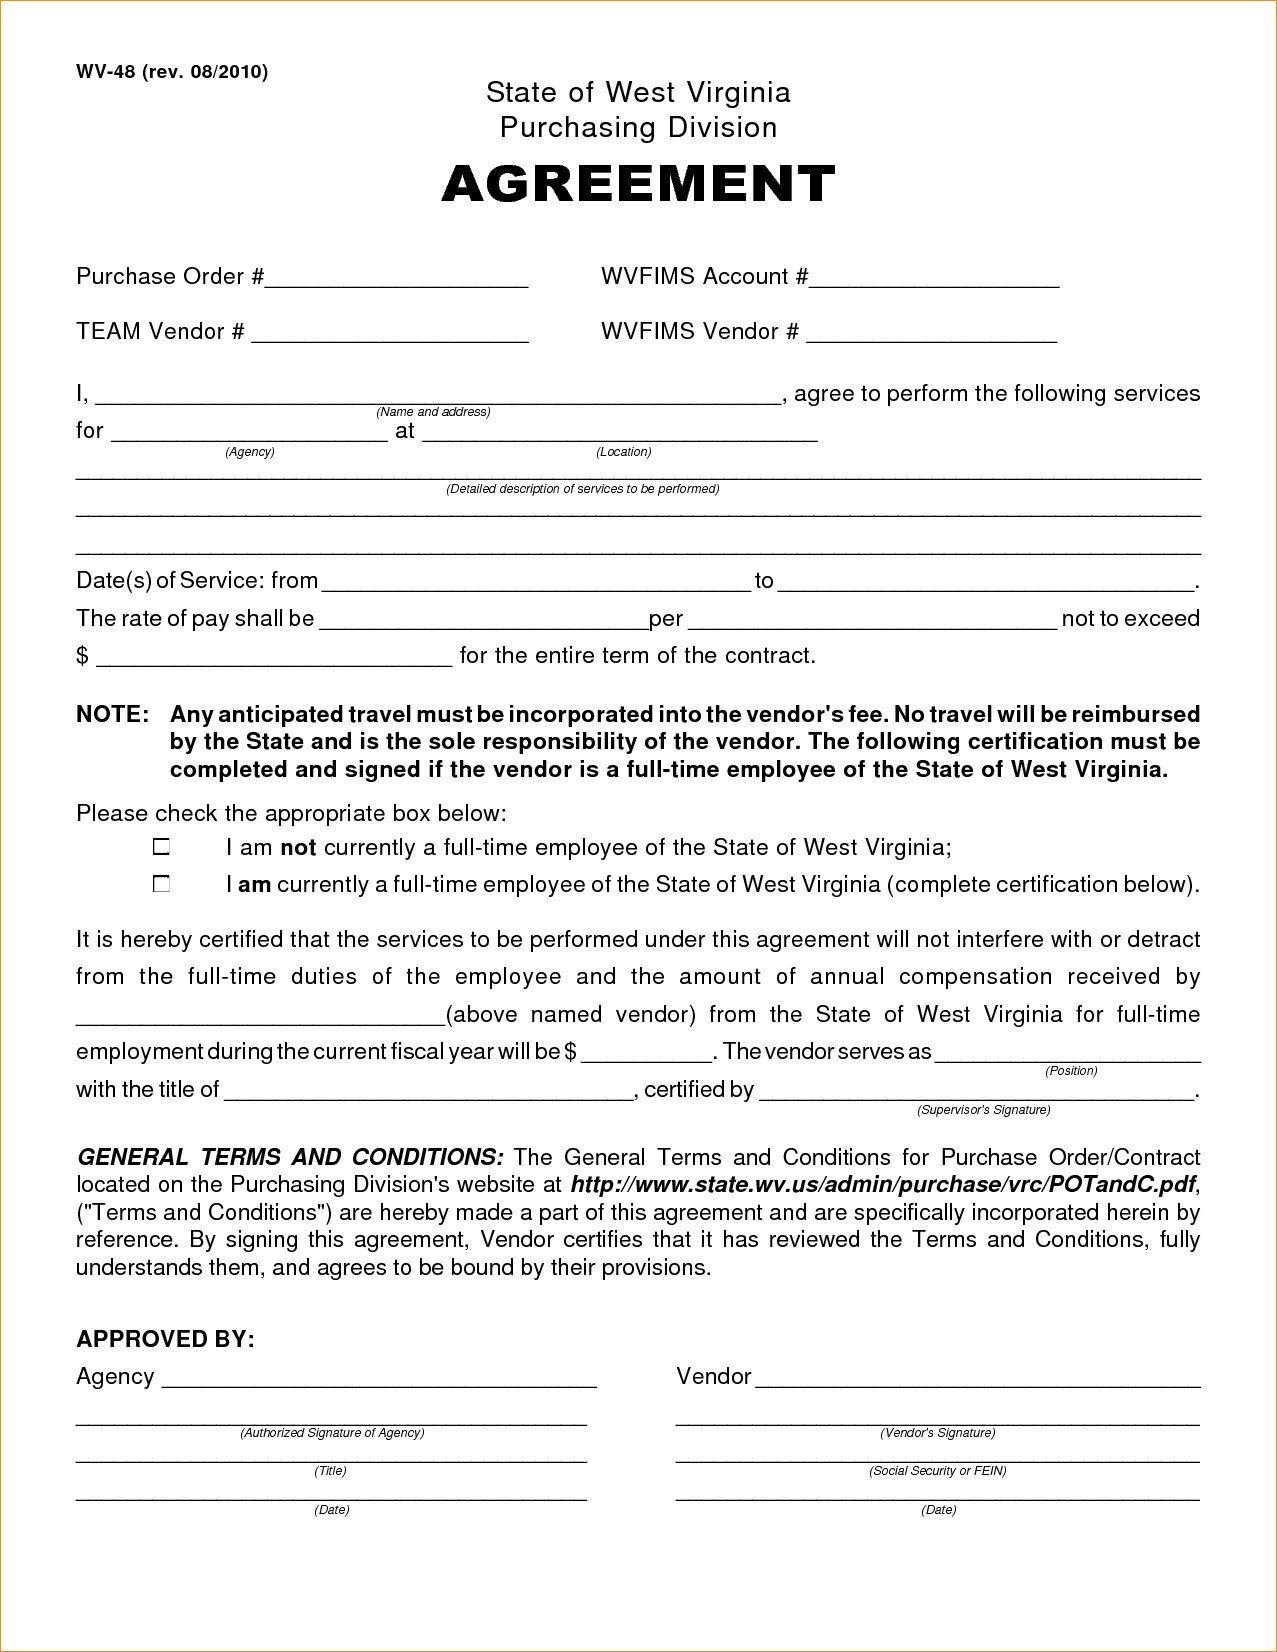 Free Wholesale Contract Template Lovely Wholesale Purchase Agreement Template Great Real Estate Contract Template Purchase Agreement Wholesale Real Estate